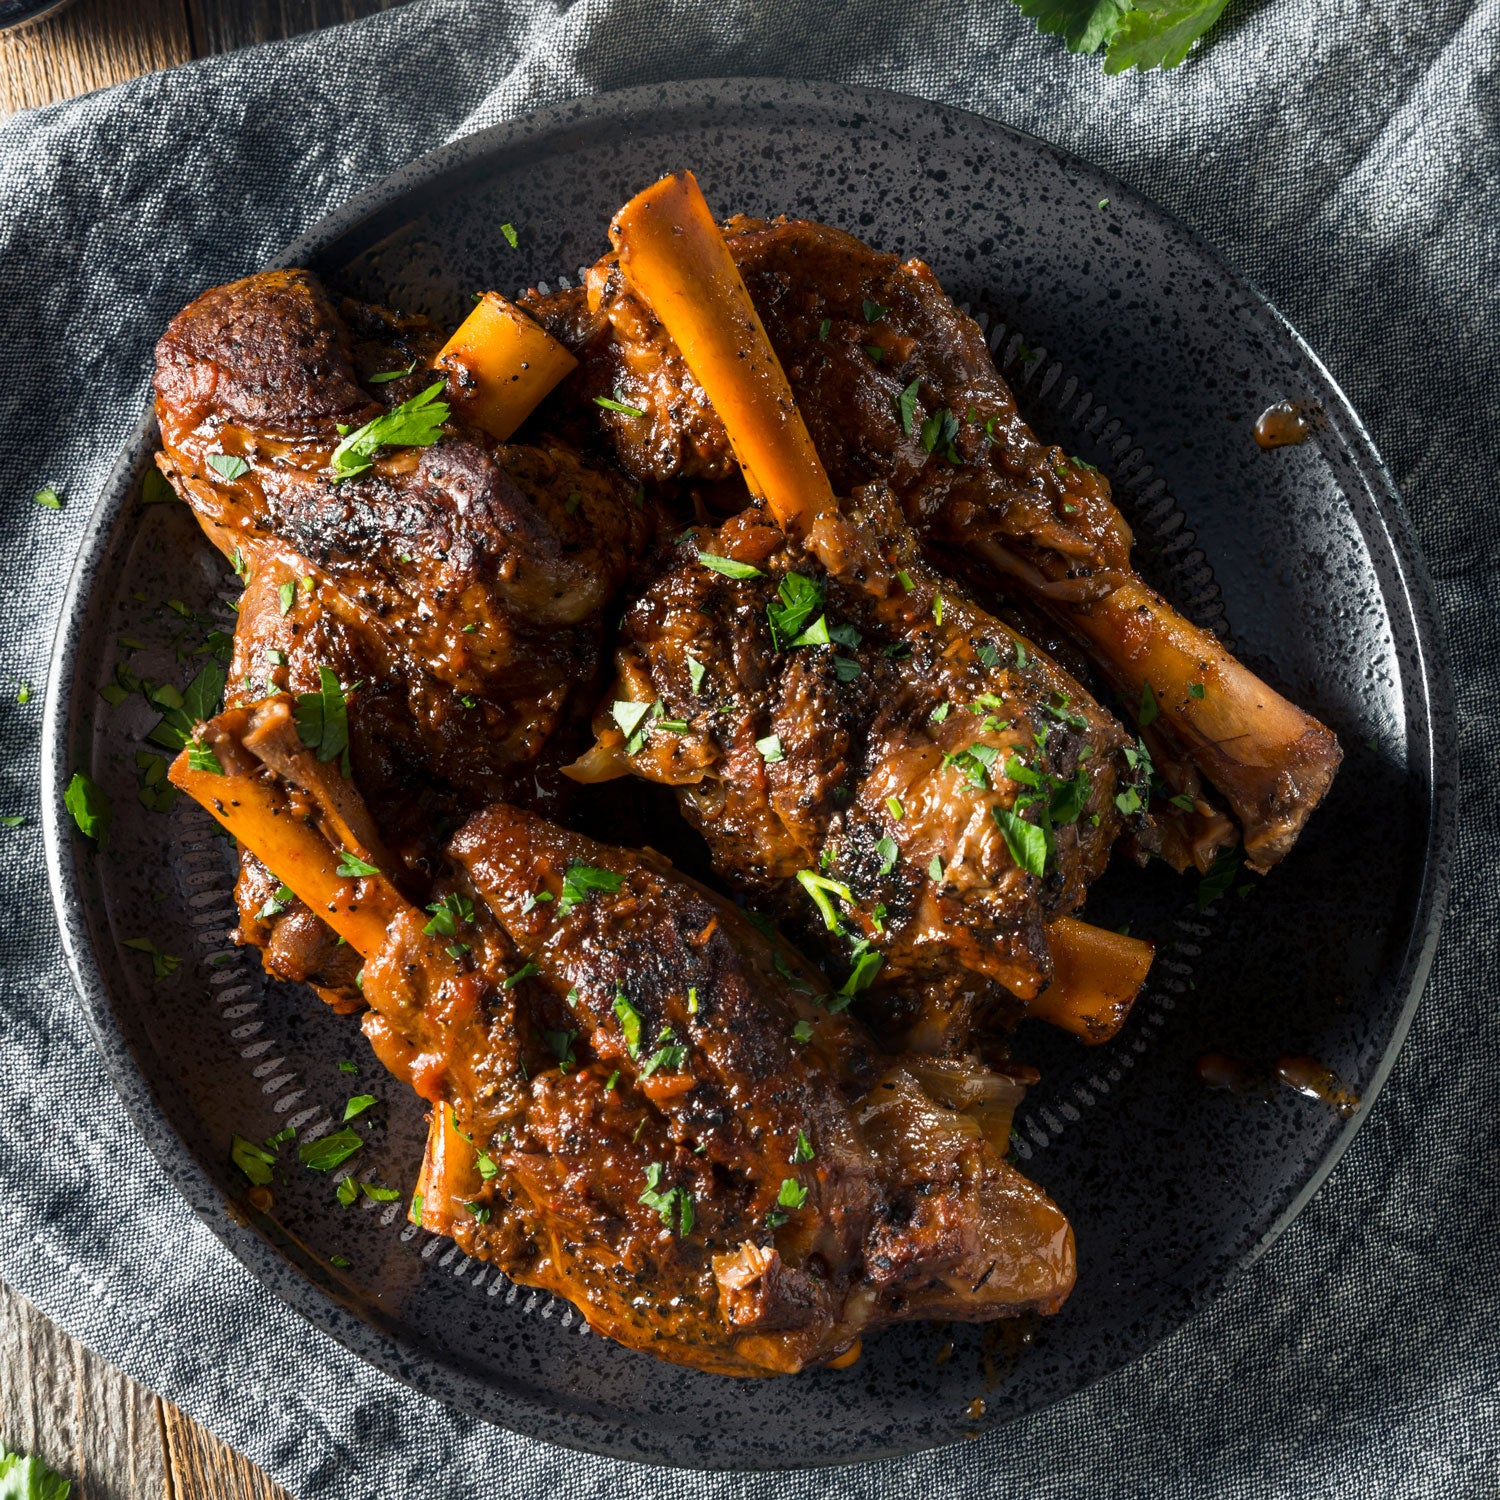 Dec. 19 Weekend Dinner - Slow Cooked Lamb Shank